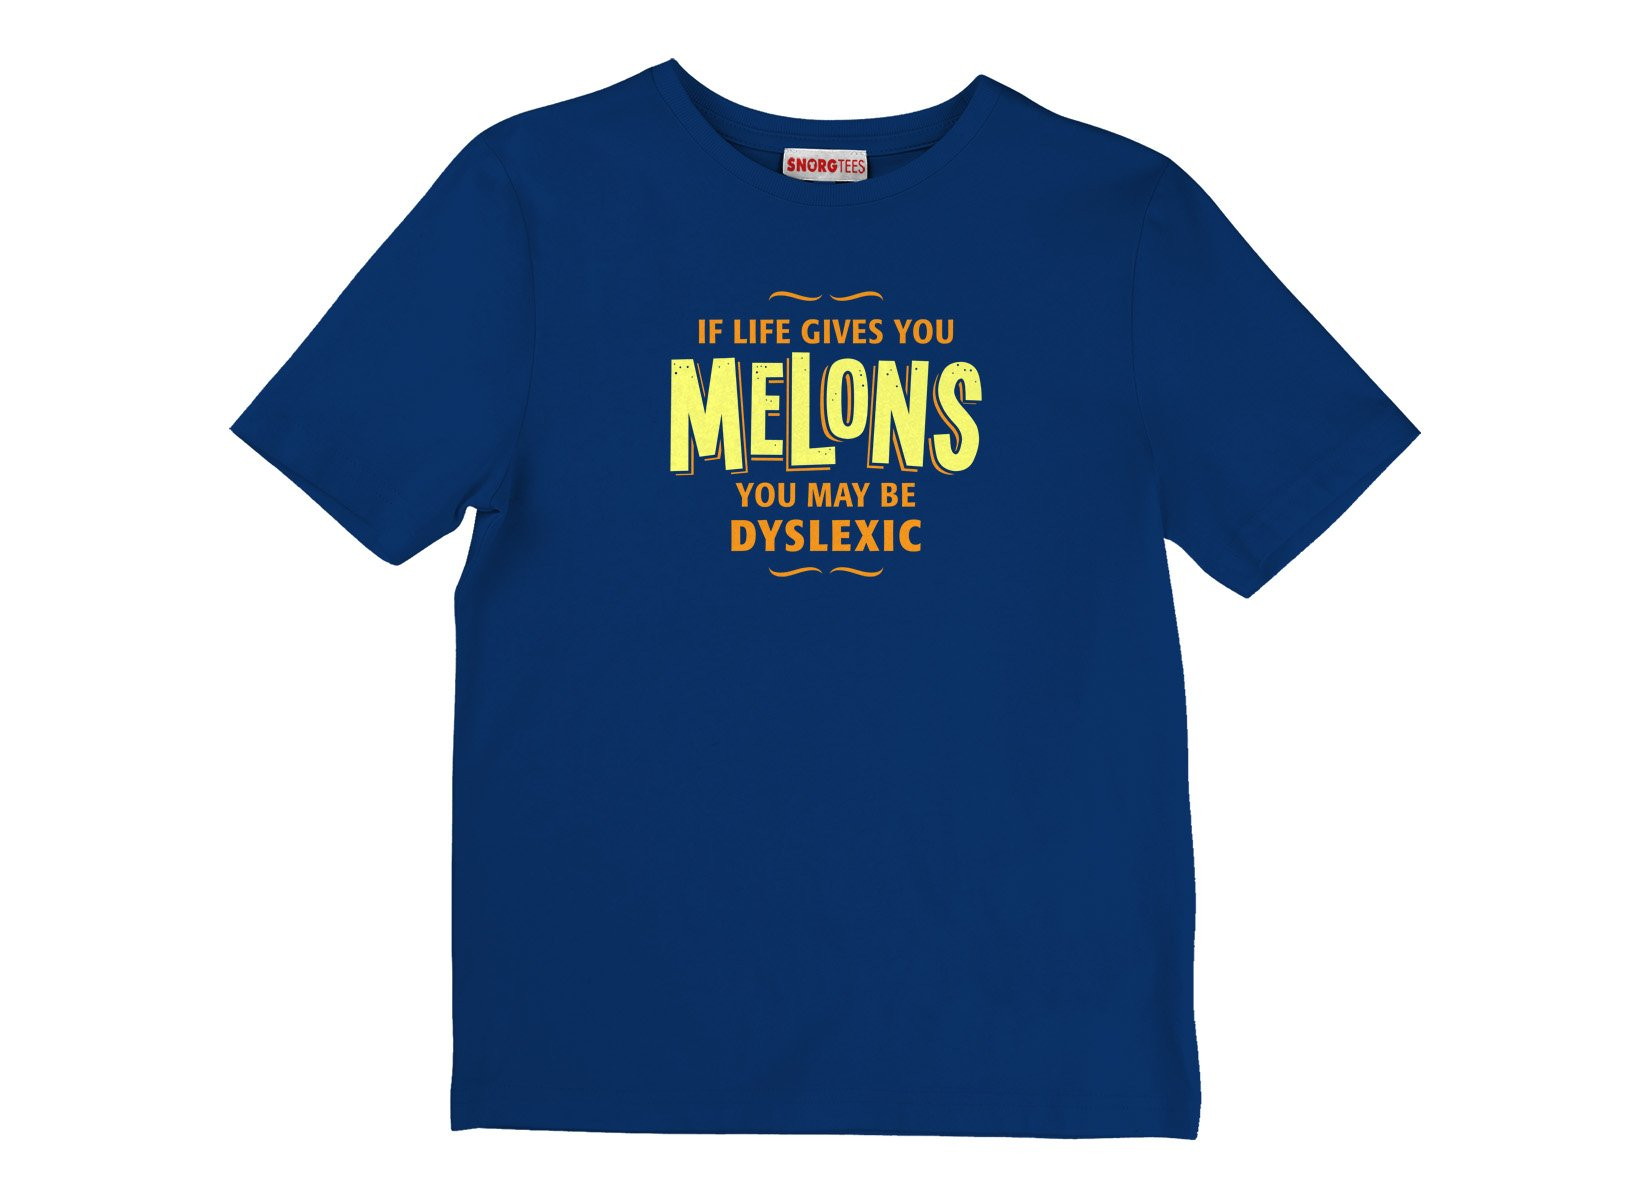 If Life Gives You Melons on Kids T-Shirt